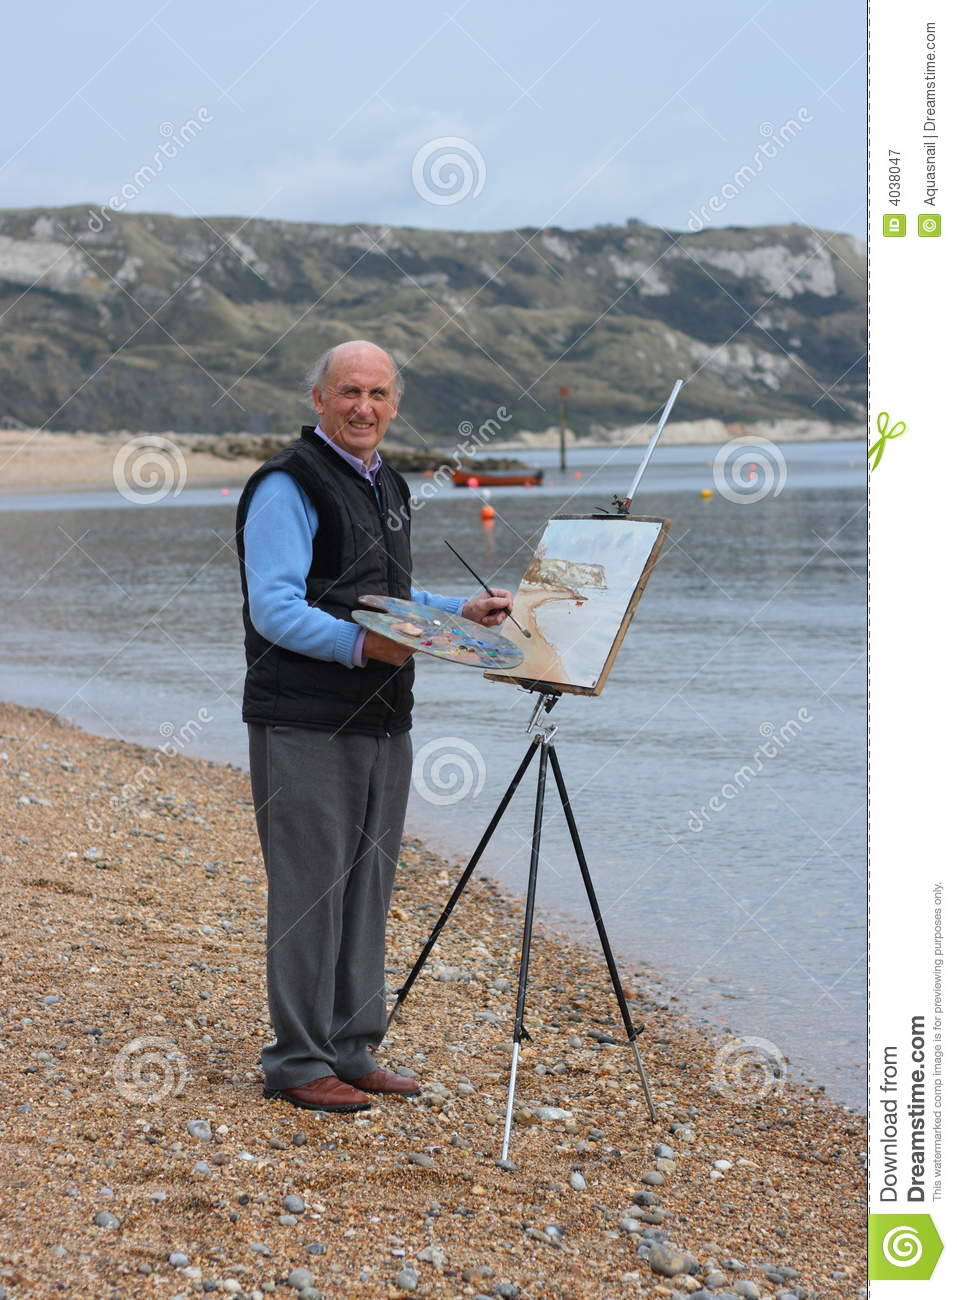 Senior male artist painting by the sea.